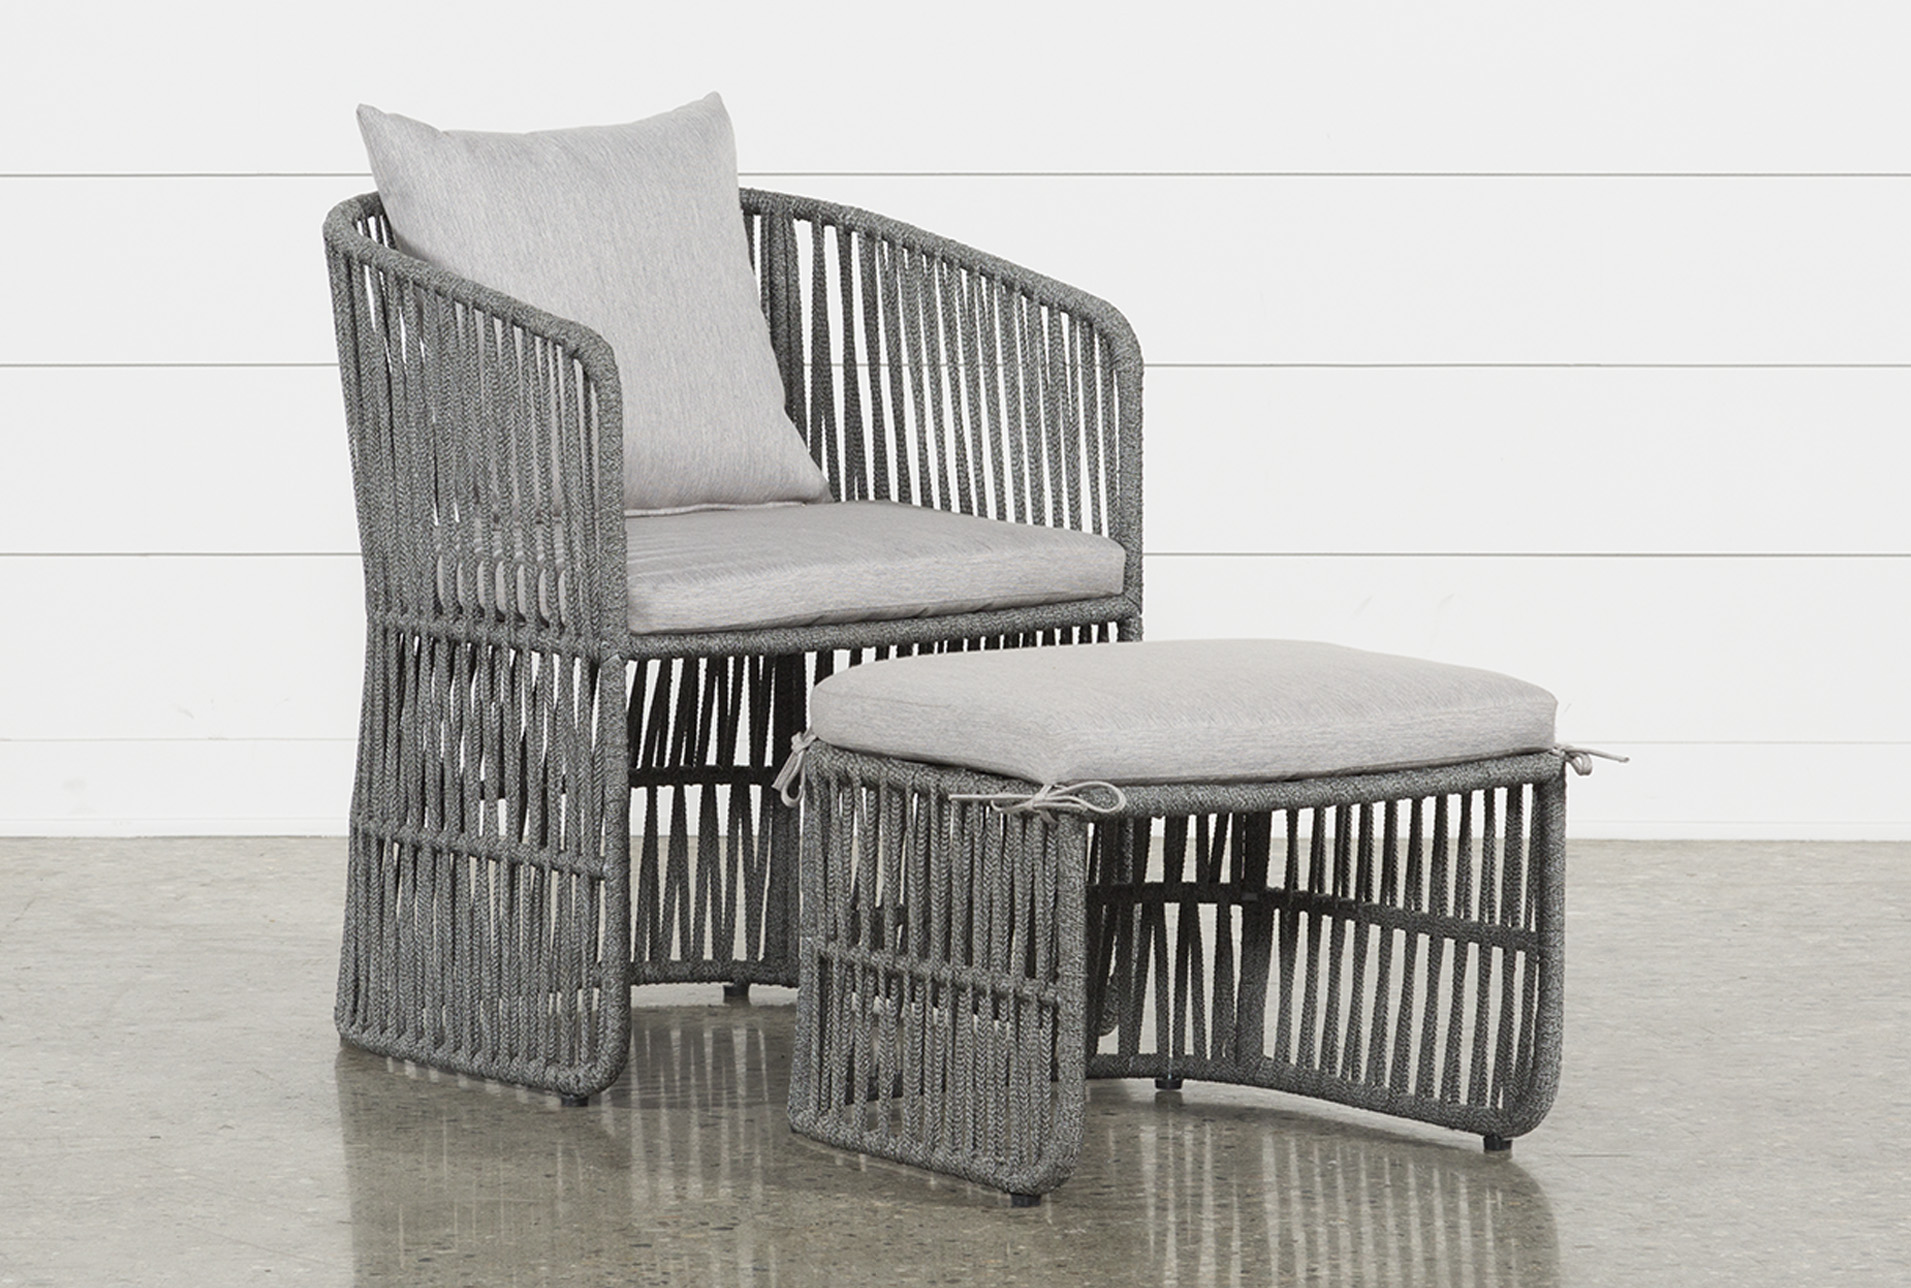 Outdoor Nautical Grey Rope Lounge Chair And Ottoman (Qty: 1) Has Been  Successfully Added To Your Cart.